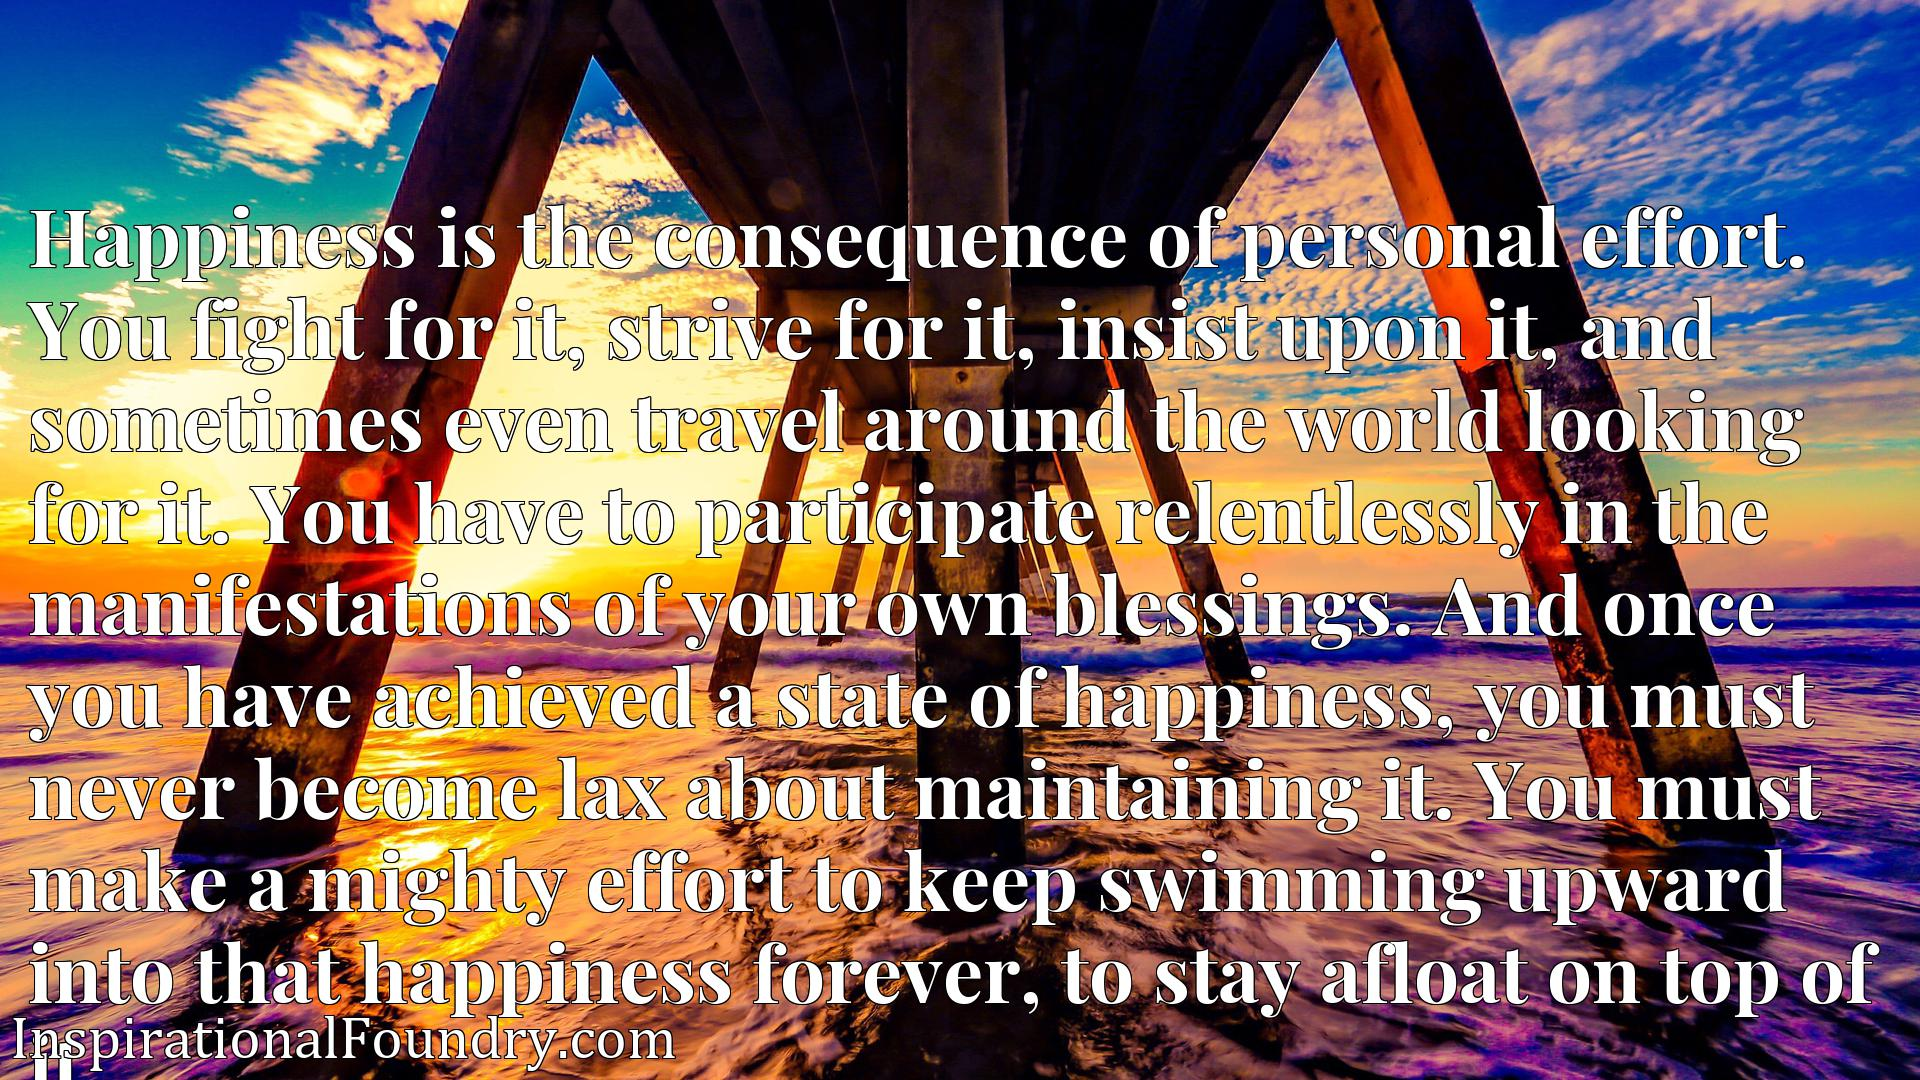 Happiness is the consequence of personal effort. You fight for it, strive for it, insist upon it, and sometimes even travel around the world looking for it. You have to participate relentlessly in the manifestations of your own blessings. And once you have achieved a state of happiness, you must never become lax about maintaining it. You must make a mighty effort to keep swimming upward into that happiness forever, to stay afloat on top of it.